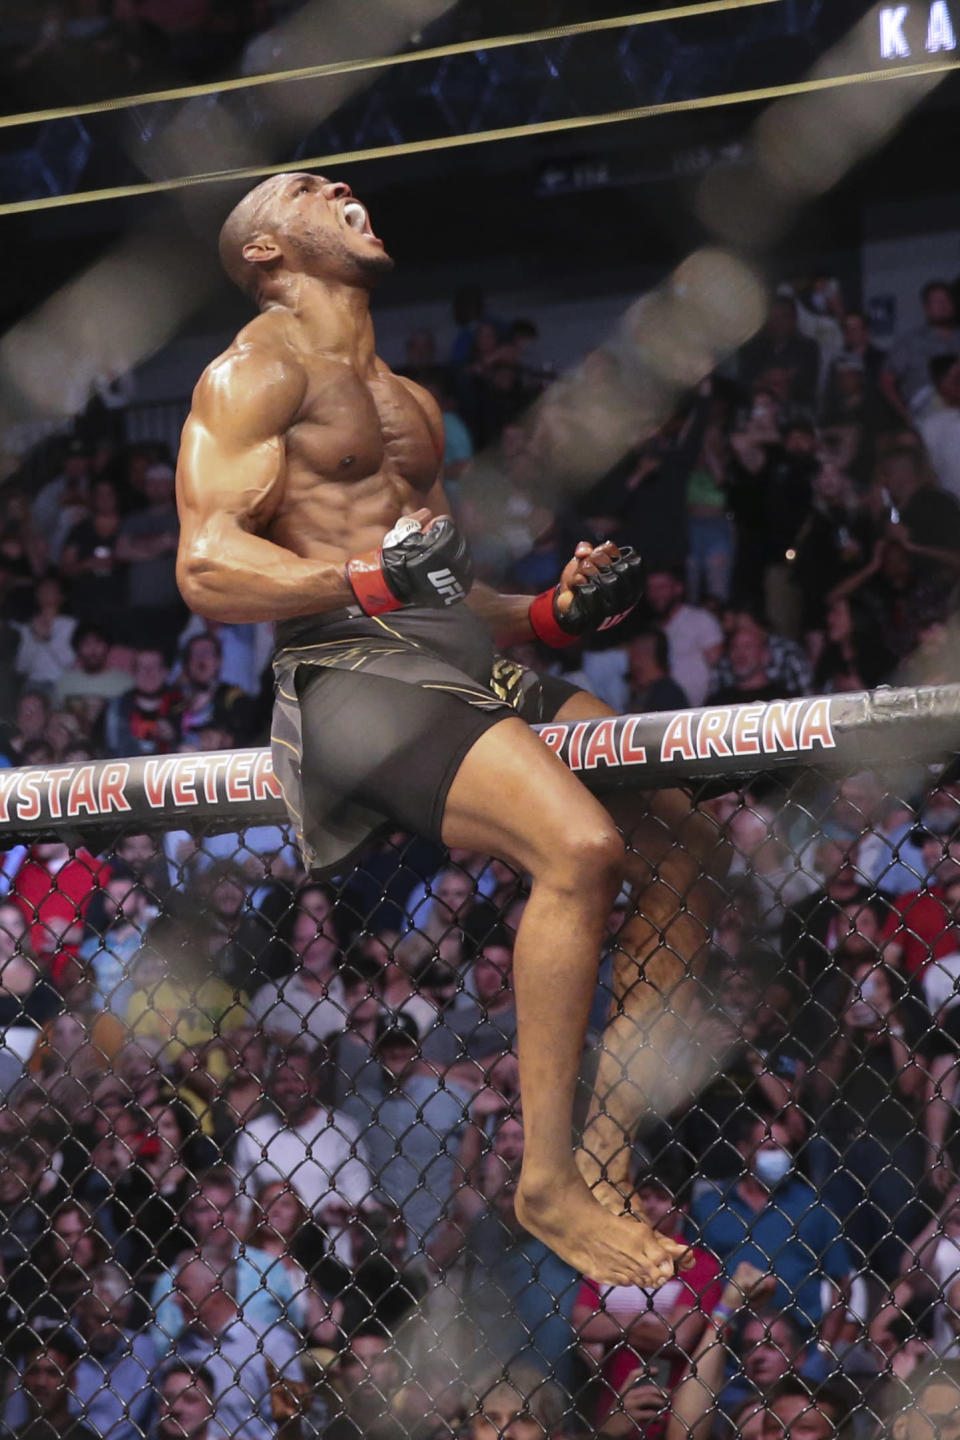 Kamaru Usman celebrates his win, atop the octagon fence, after a UFC 261 mixed martial arts bout against Jorge Masvidal early Sunday, April 25, 2021, in Jacksonville, Fla. (AP Photo/Gary McCullough)